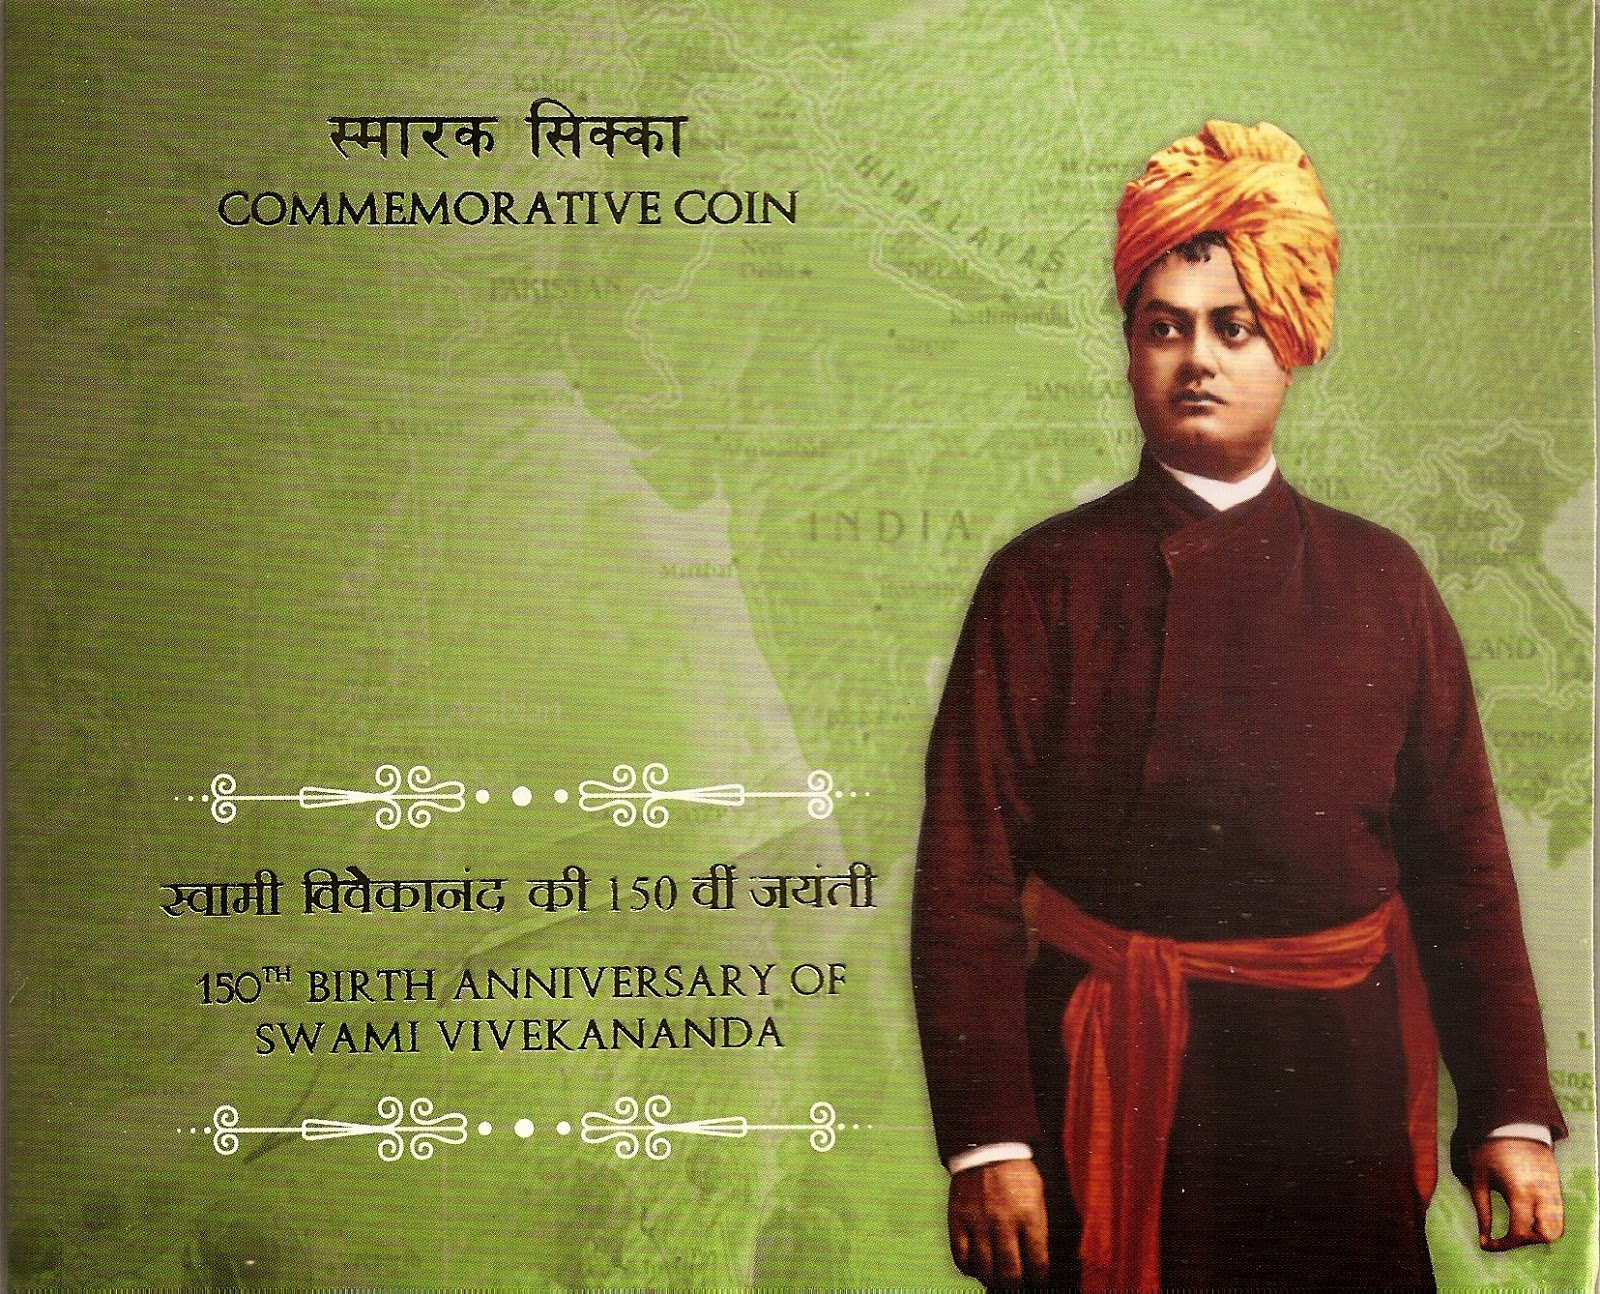 swamy vivekananda hindi essay Essay swami vivekananda copyright: © all rights reserved swami vivekananda appeared lost her confidence in in a critical phase in out history when india was struggling under the thralldom of the british rule and had almost lost her confidence in her culture and civilization.